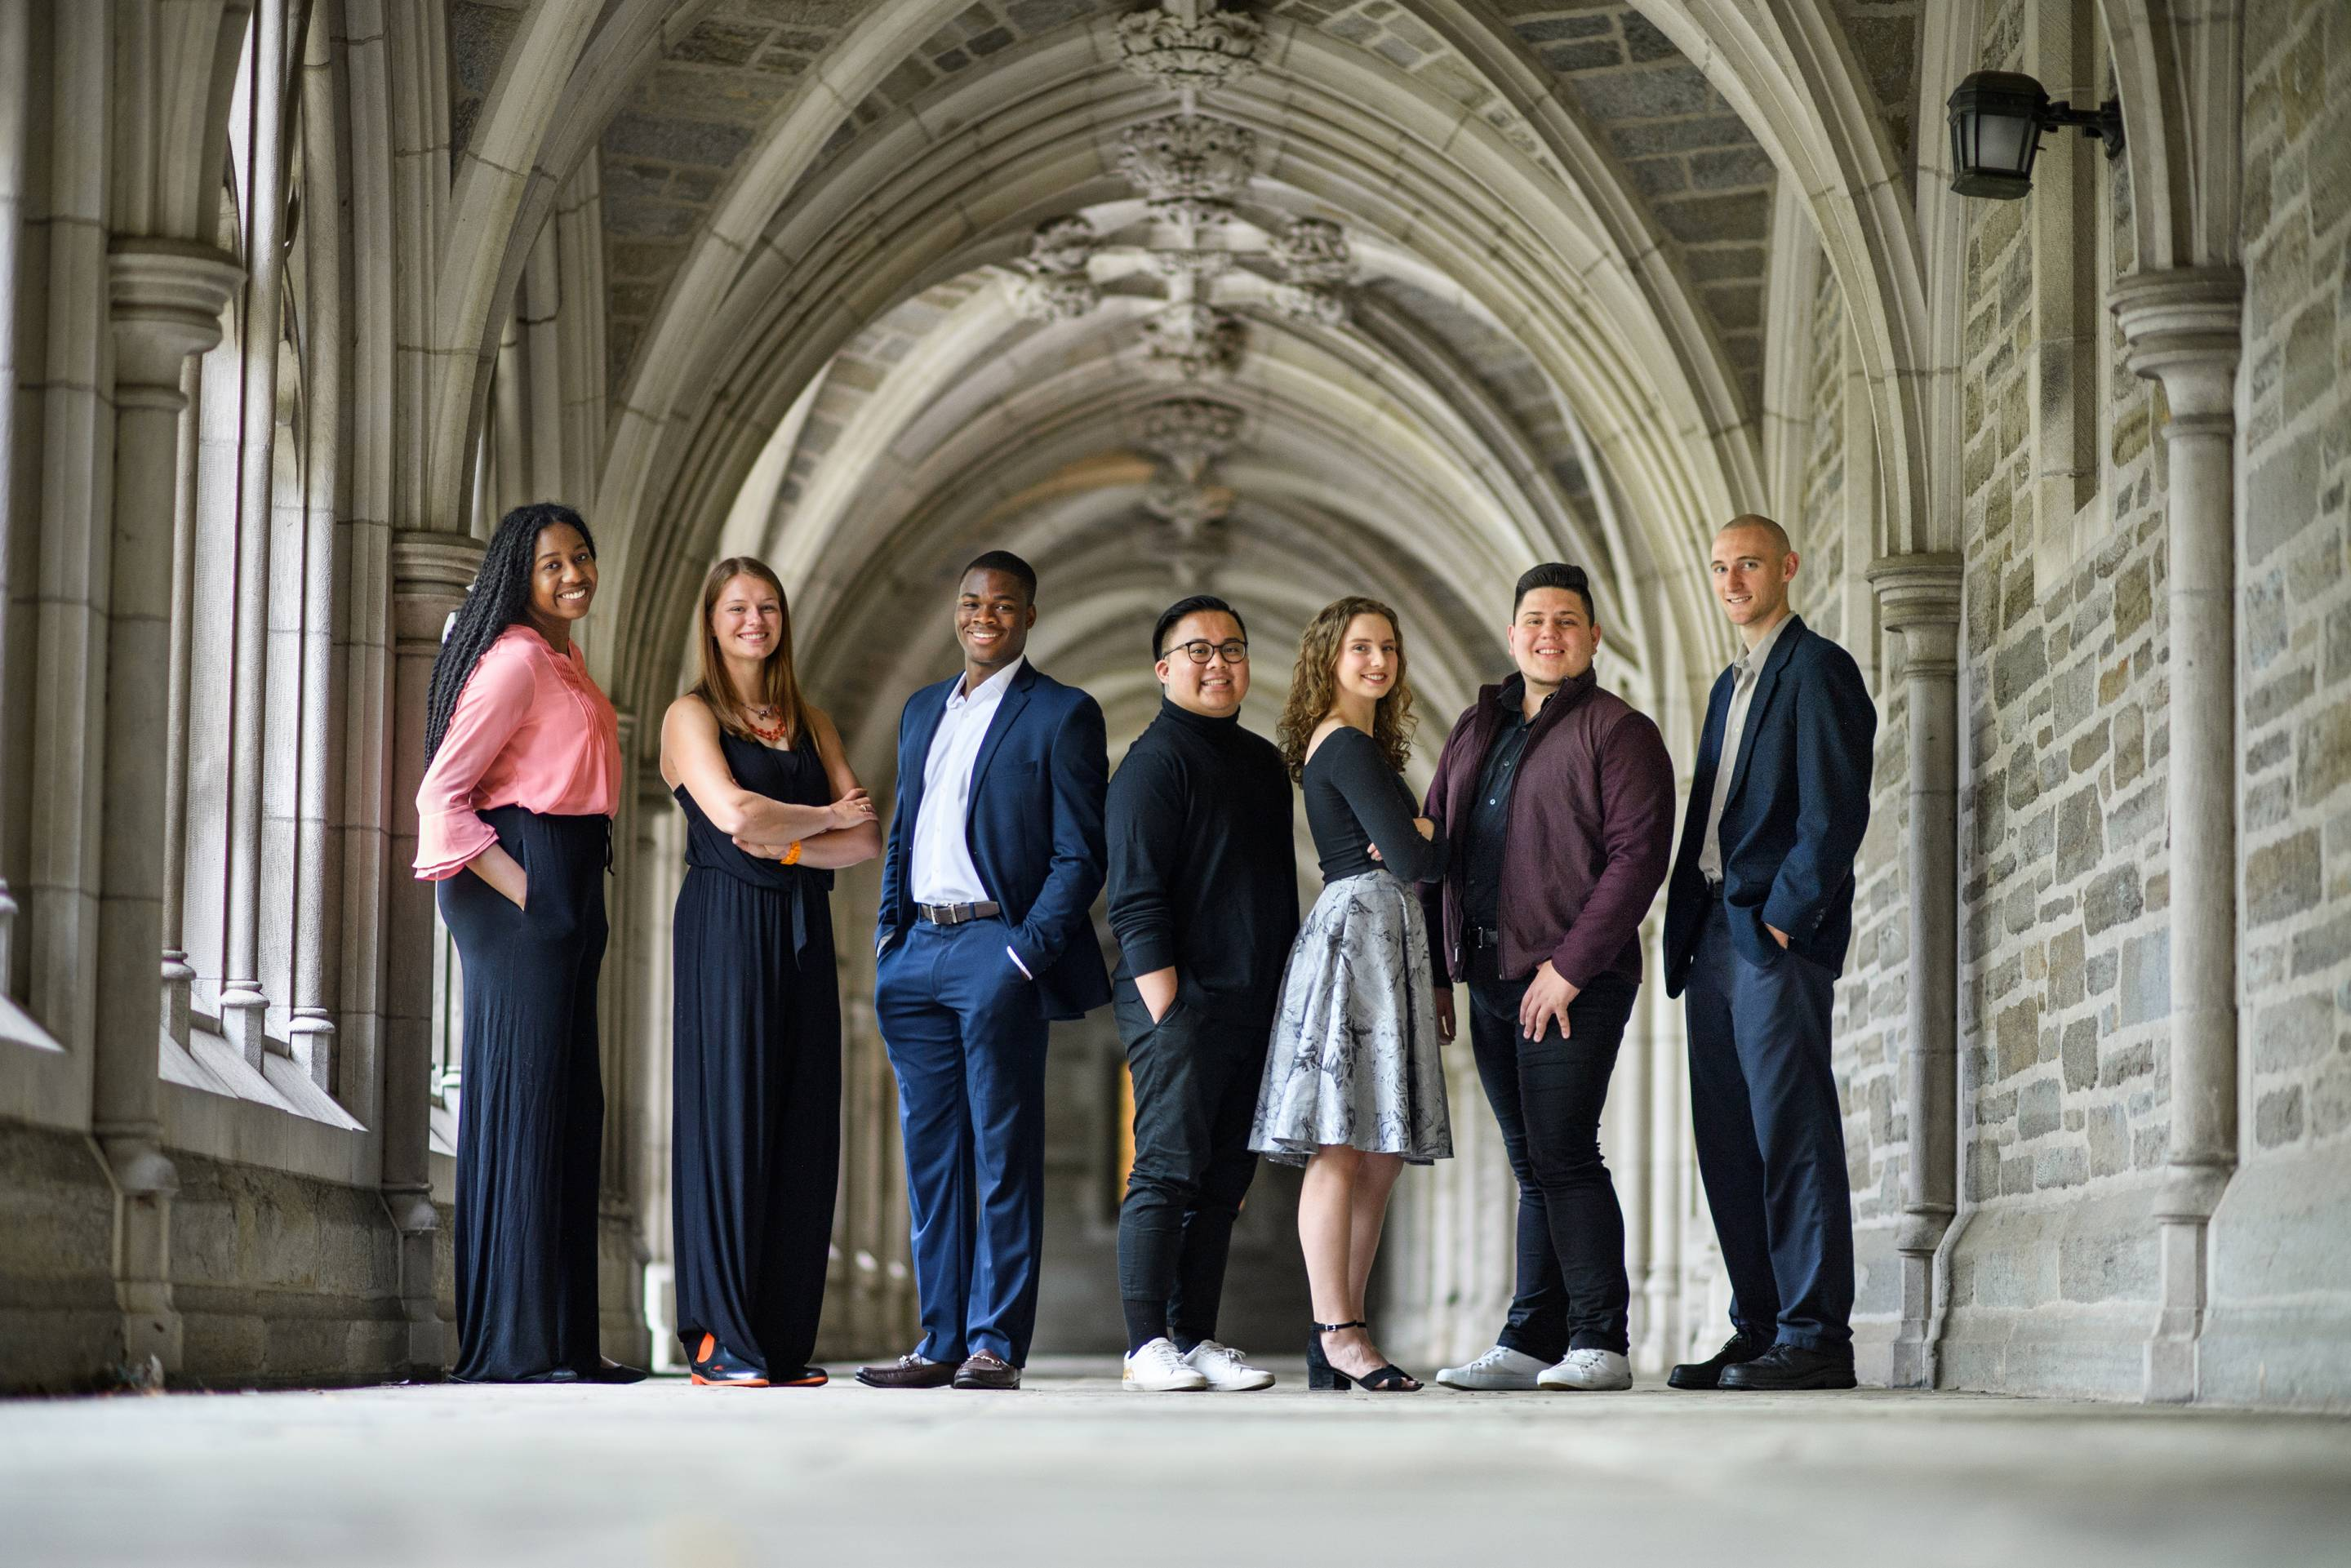 The Spirit of Princeton Award winners for 2019; Photo by Sameer A. Khan/Fotobuddy